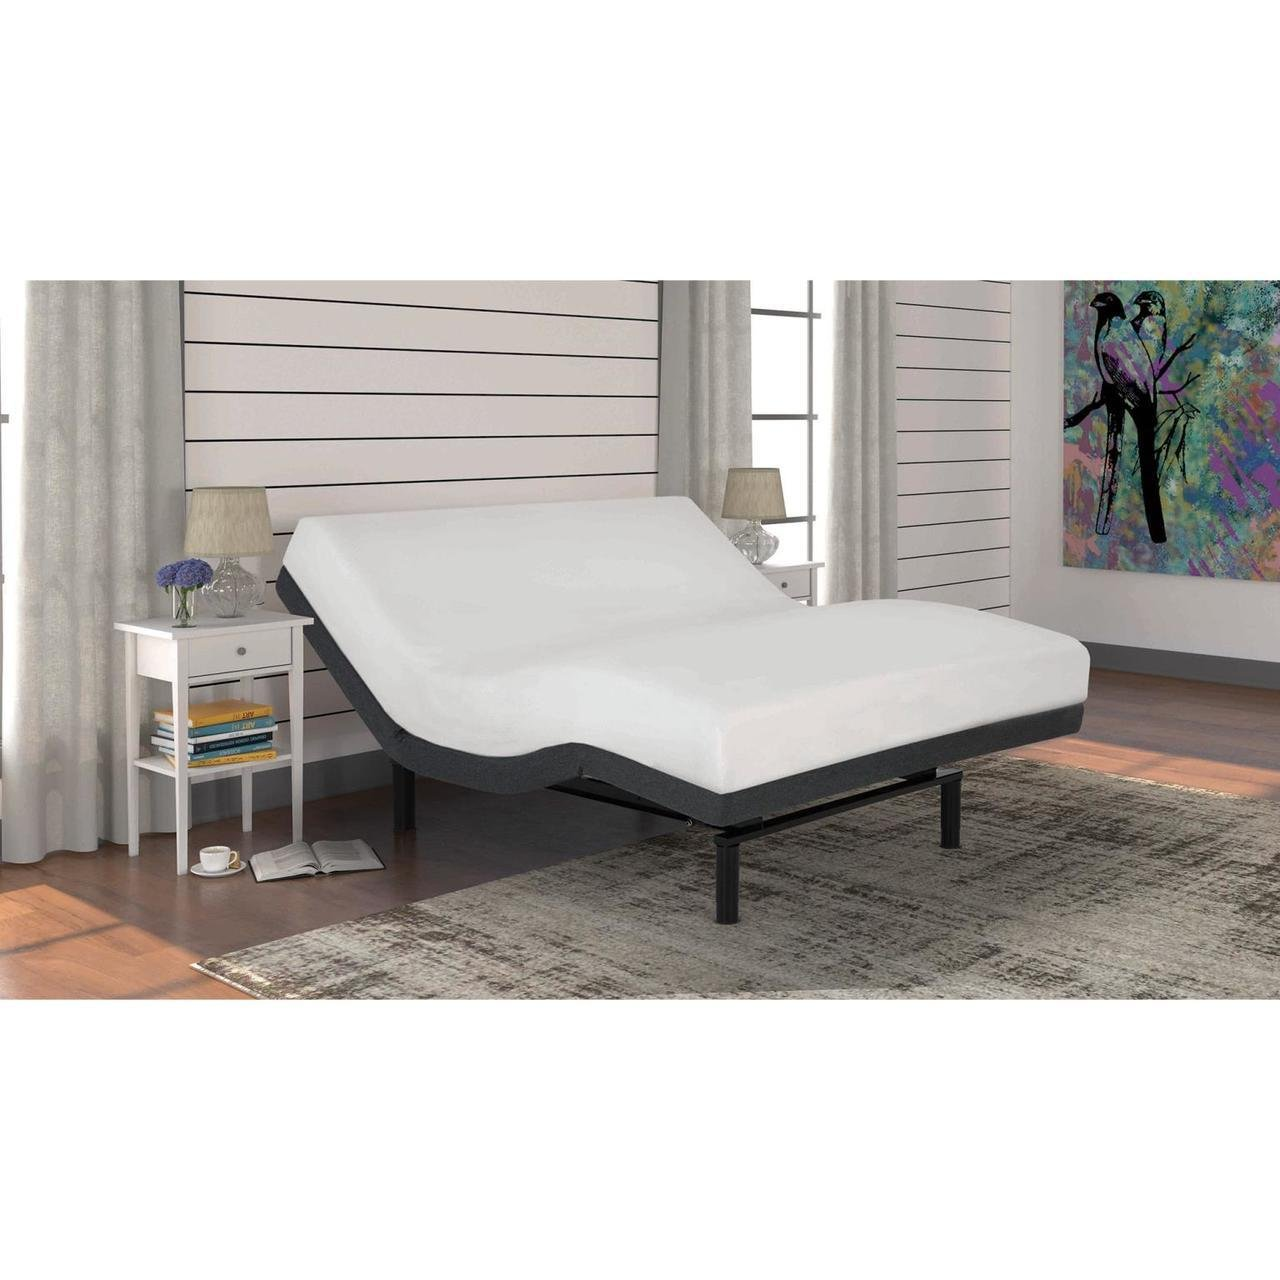 iDealBed Leggett and Platt iEscape Adjustable Bed Base, Wireless, Wall Hugger, Massage, Zero Gravity, Queen